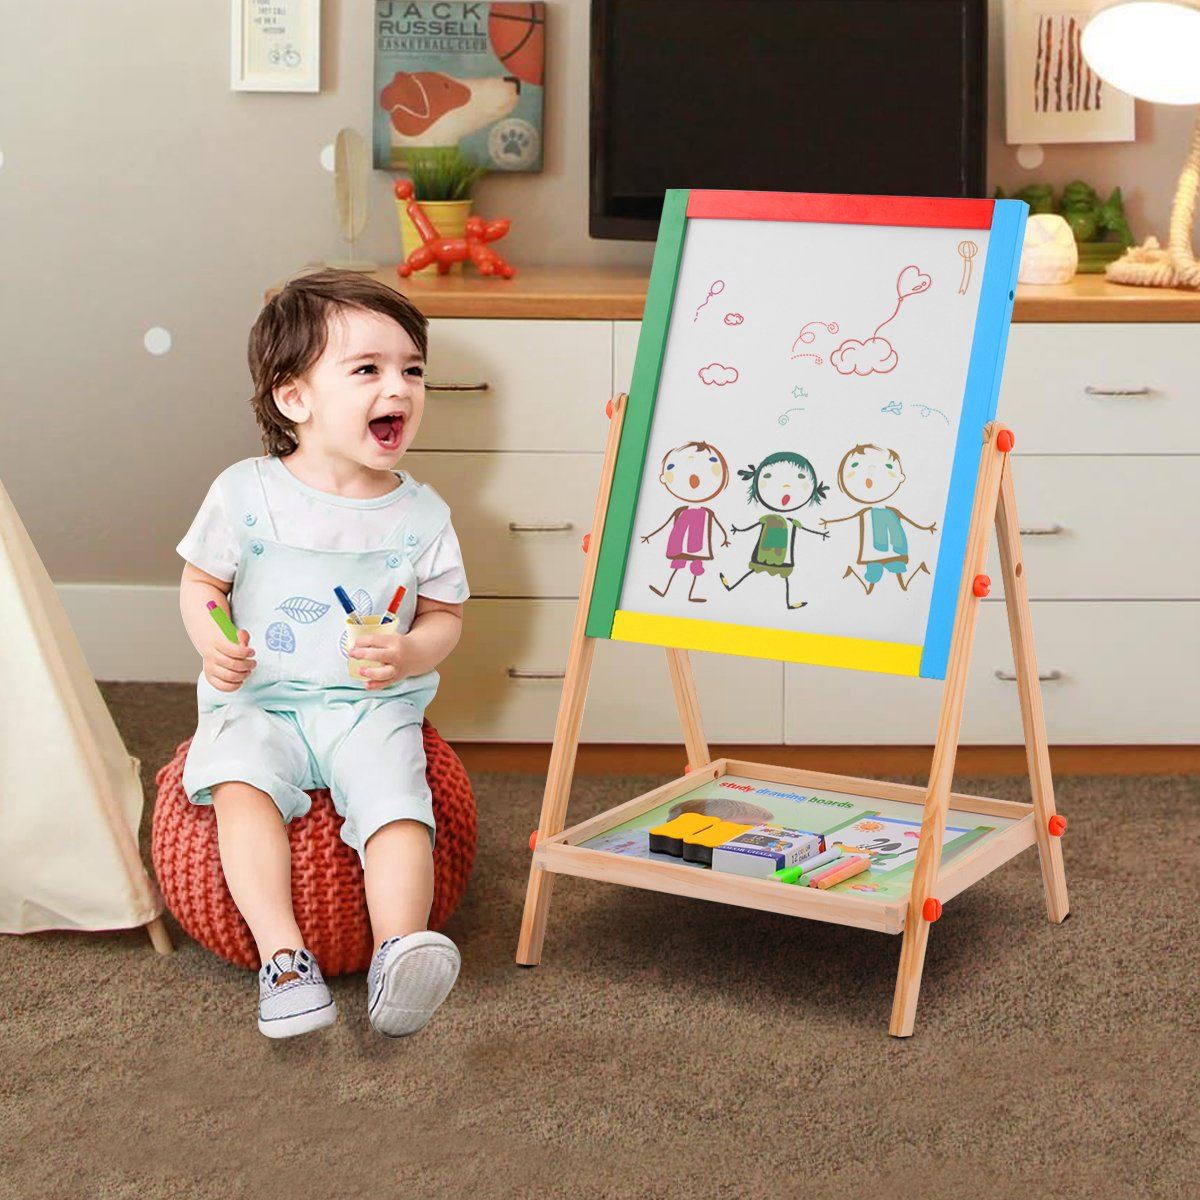 Double Sided Adjustable Chalkboard /& White Dry Erase Surface with 12 PCS Chalks Costzon 2 in 1 Kids Easel Marker Pen Natural Wood Magnetic Sponge /& Bottom Tray Wood Standing Easel for Toddlers